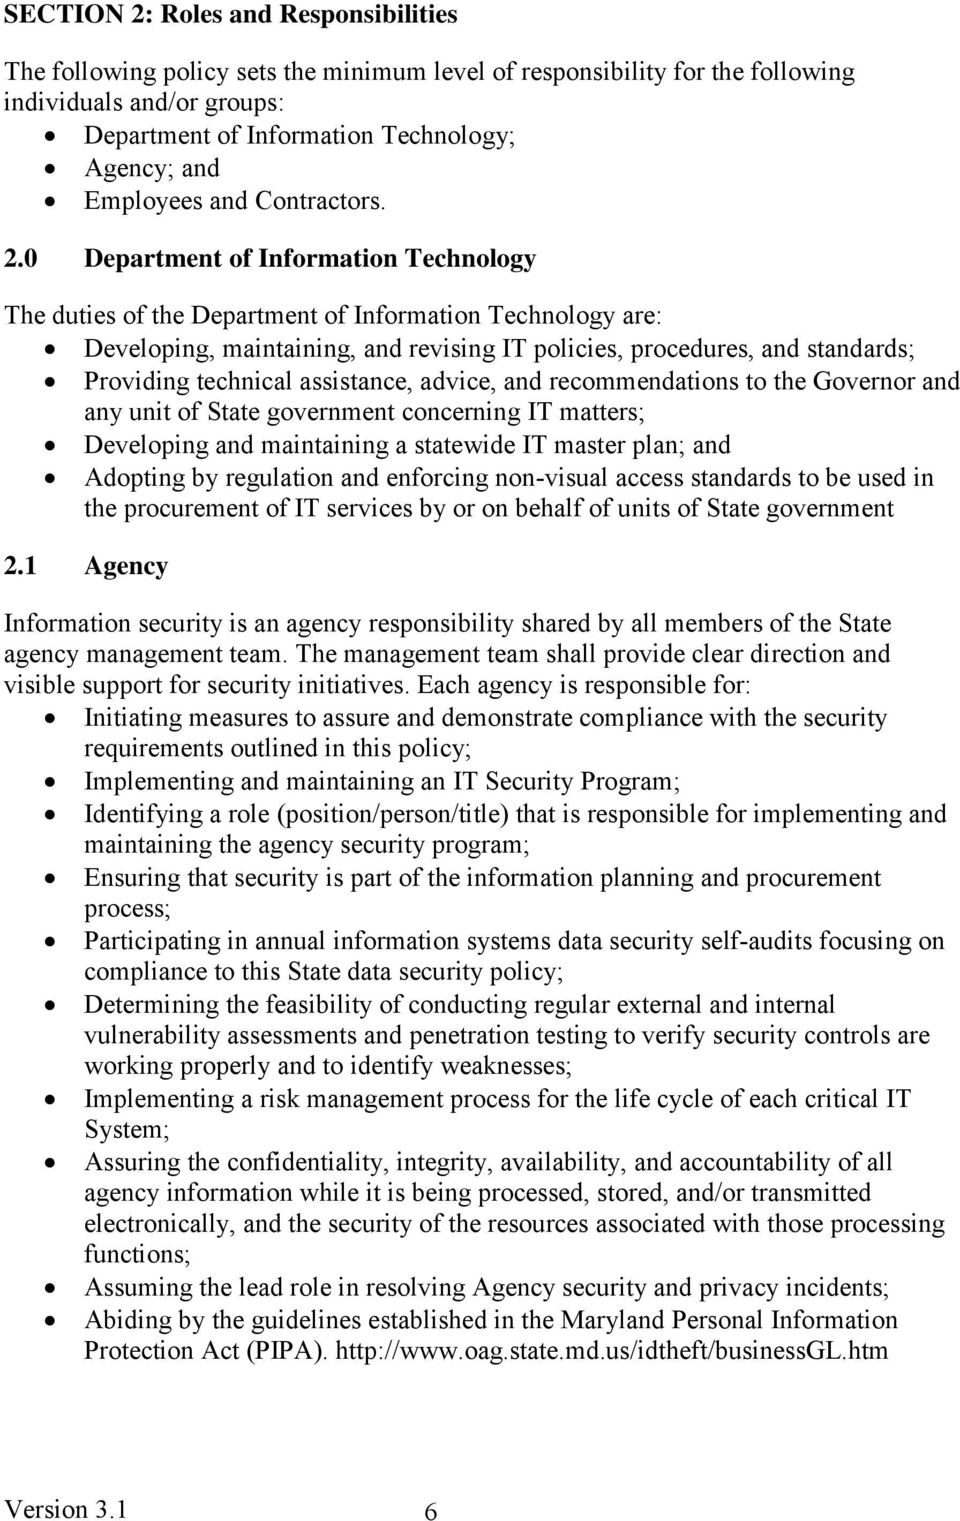 0 Department of Information Technology The duties of the Department of Information Technology are: Developing, maintaining, and revising IT policies, procedures, and standards; Providing technical